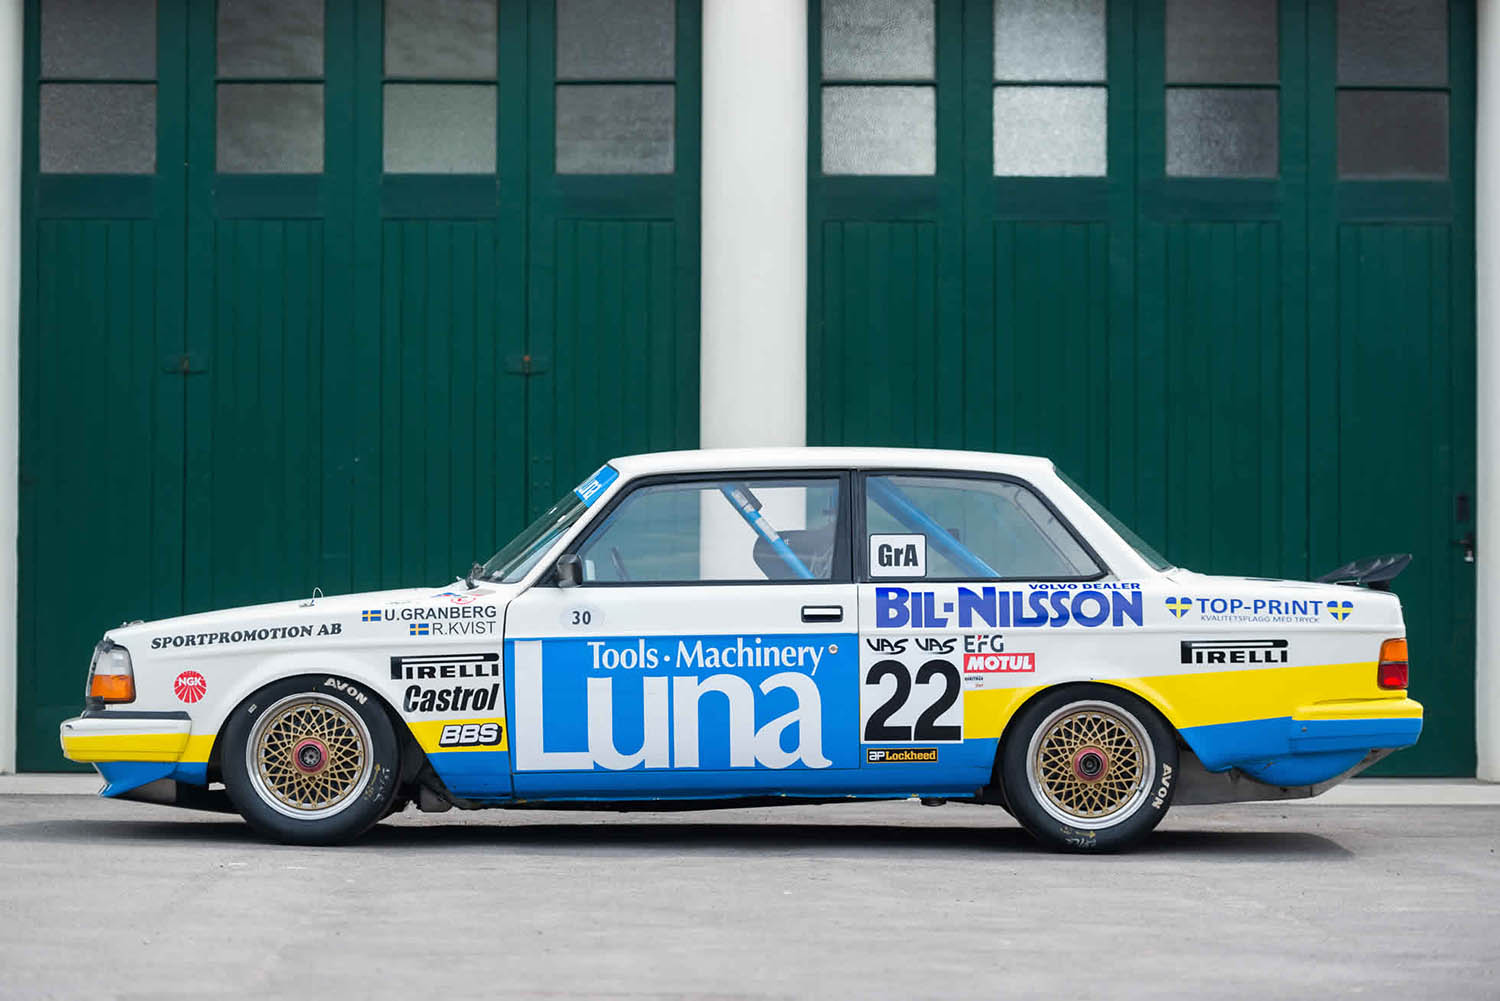 5d3183a44f388a1eead8be86_02-for-sale-1984-volvo-240-turbo-group-abicester-heritage-oxfordshire-uk-sports-purpose-porsche-specialists.jpg